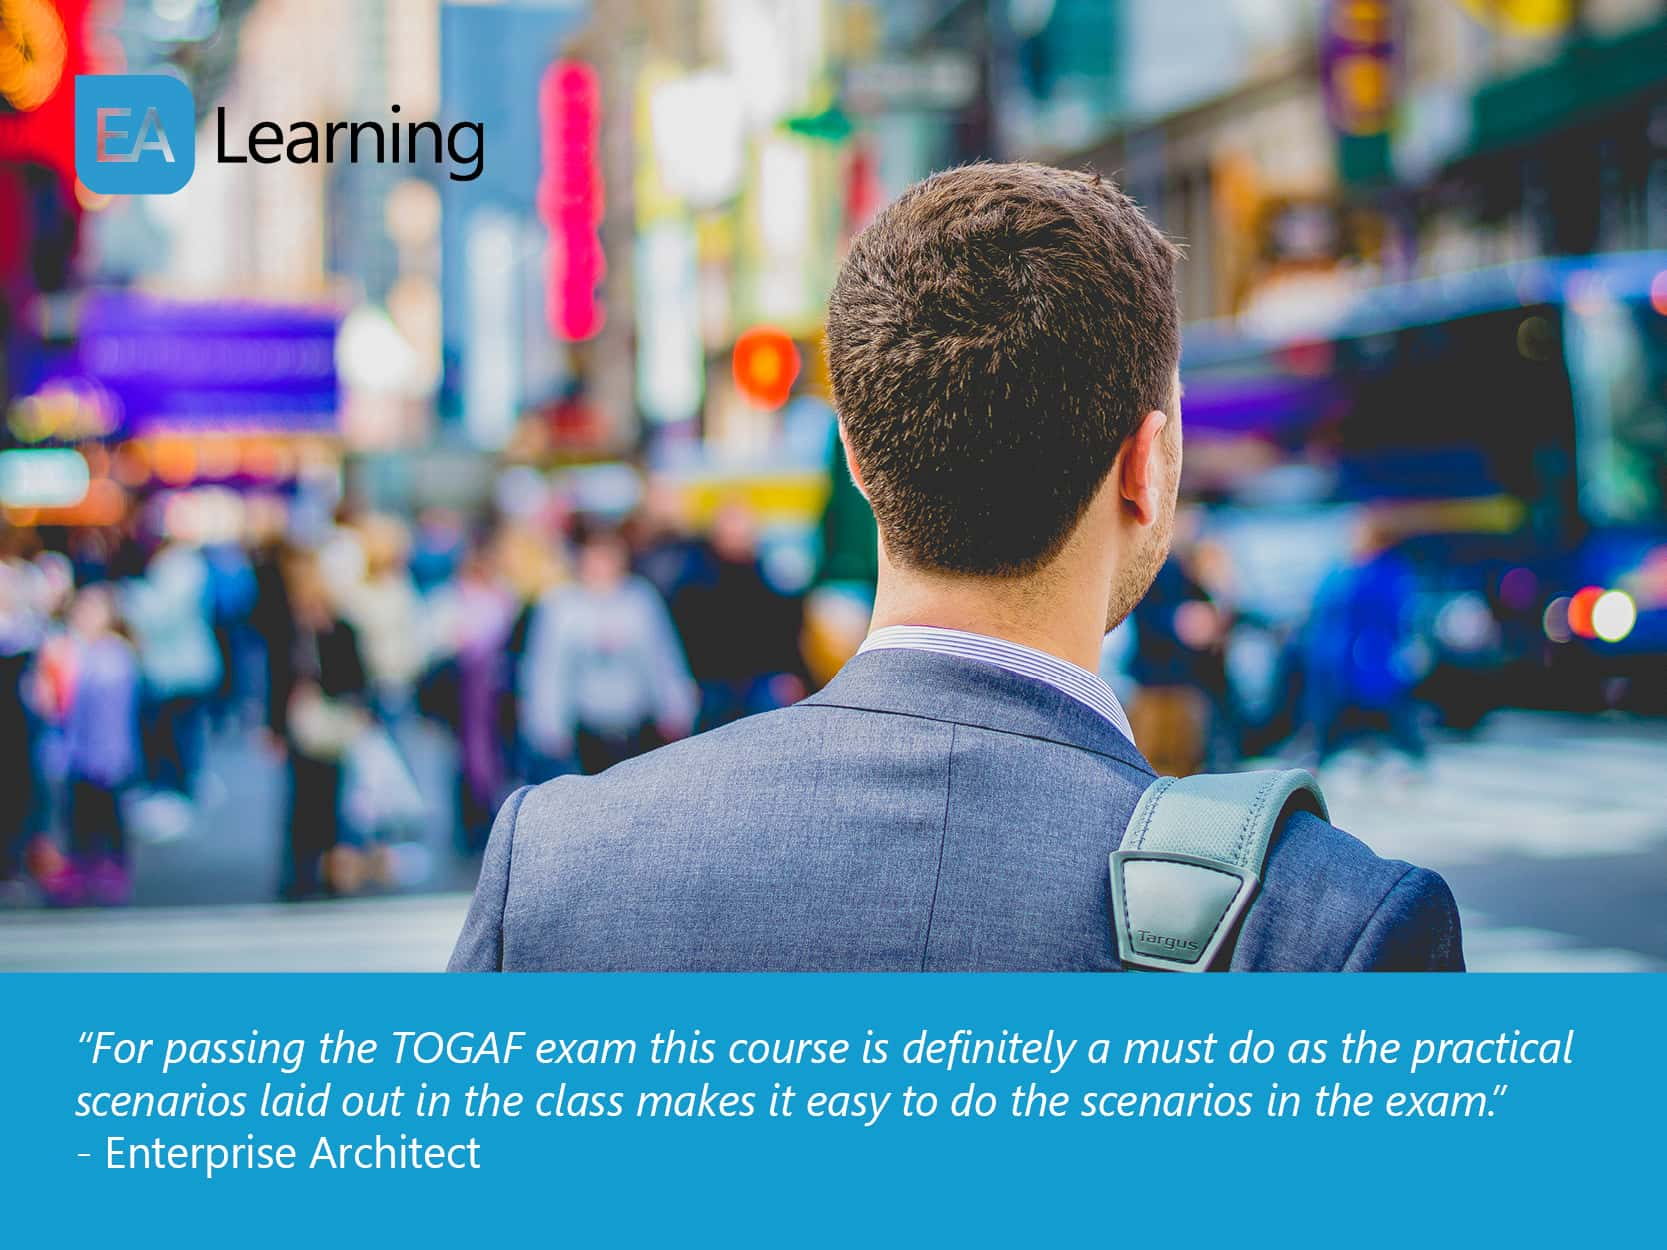 An introduction to togaf ea learning a togaf introduction togaf is a framework for enterprise architecture which provides a comprehensive approach to the design planning implementation and xflitez Gallery